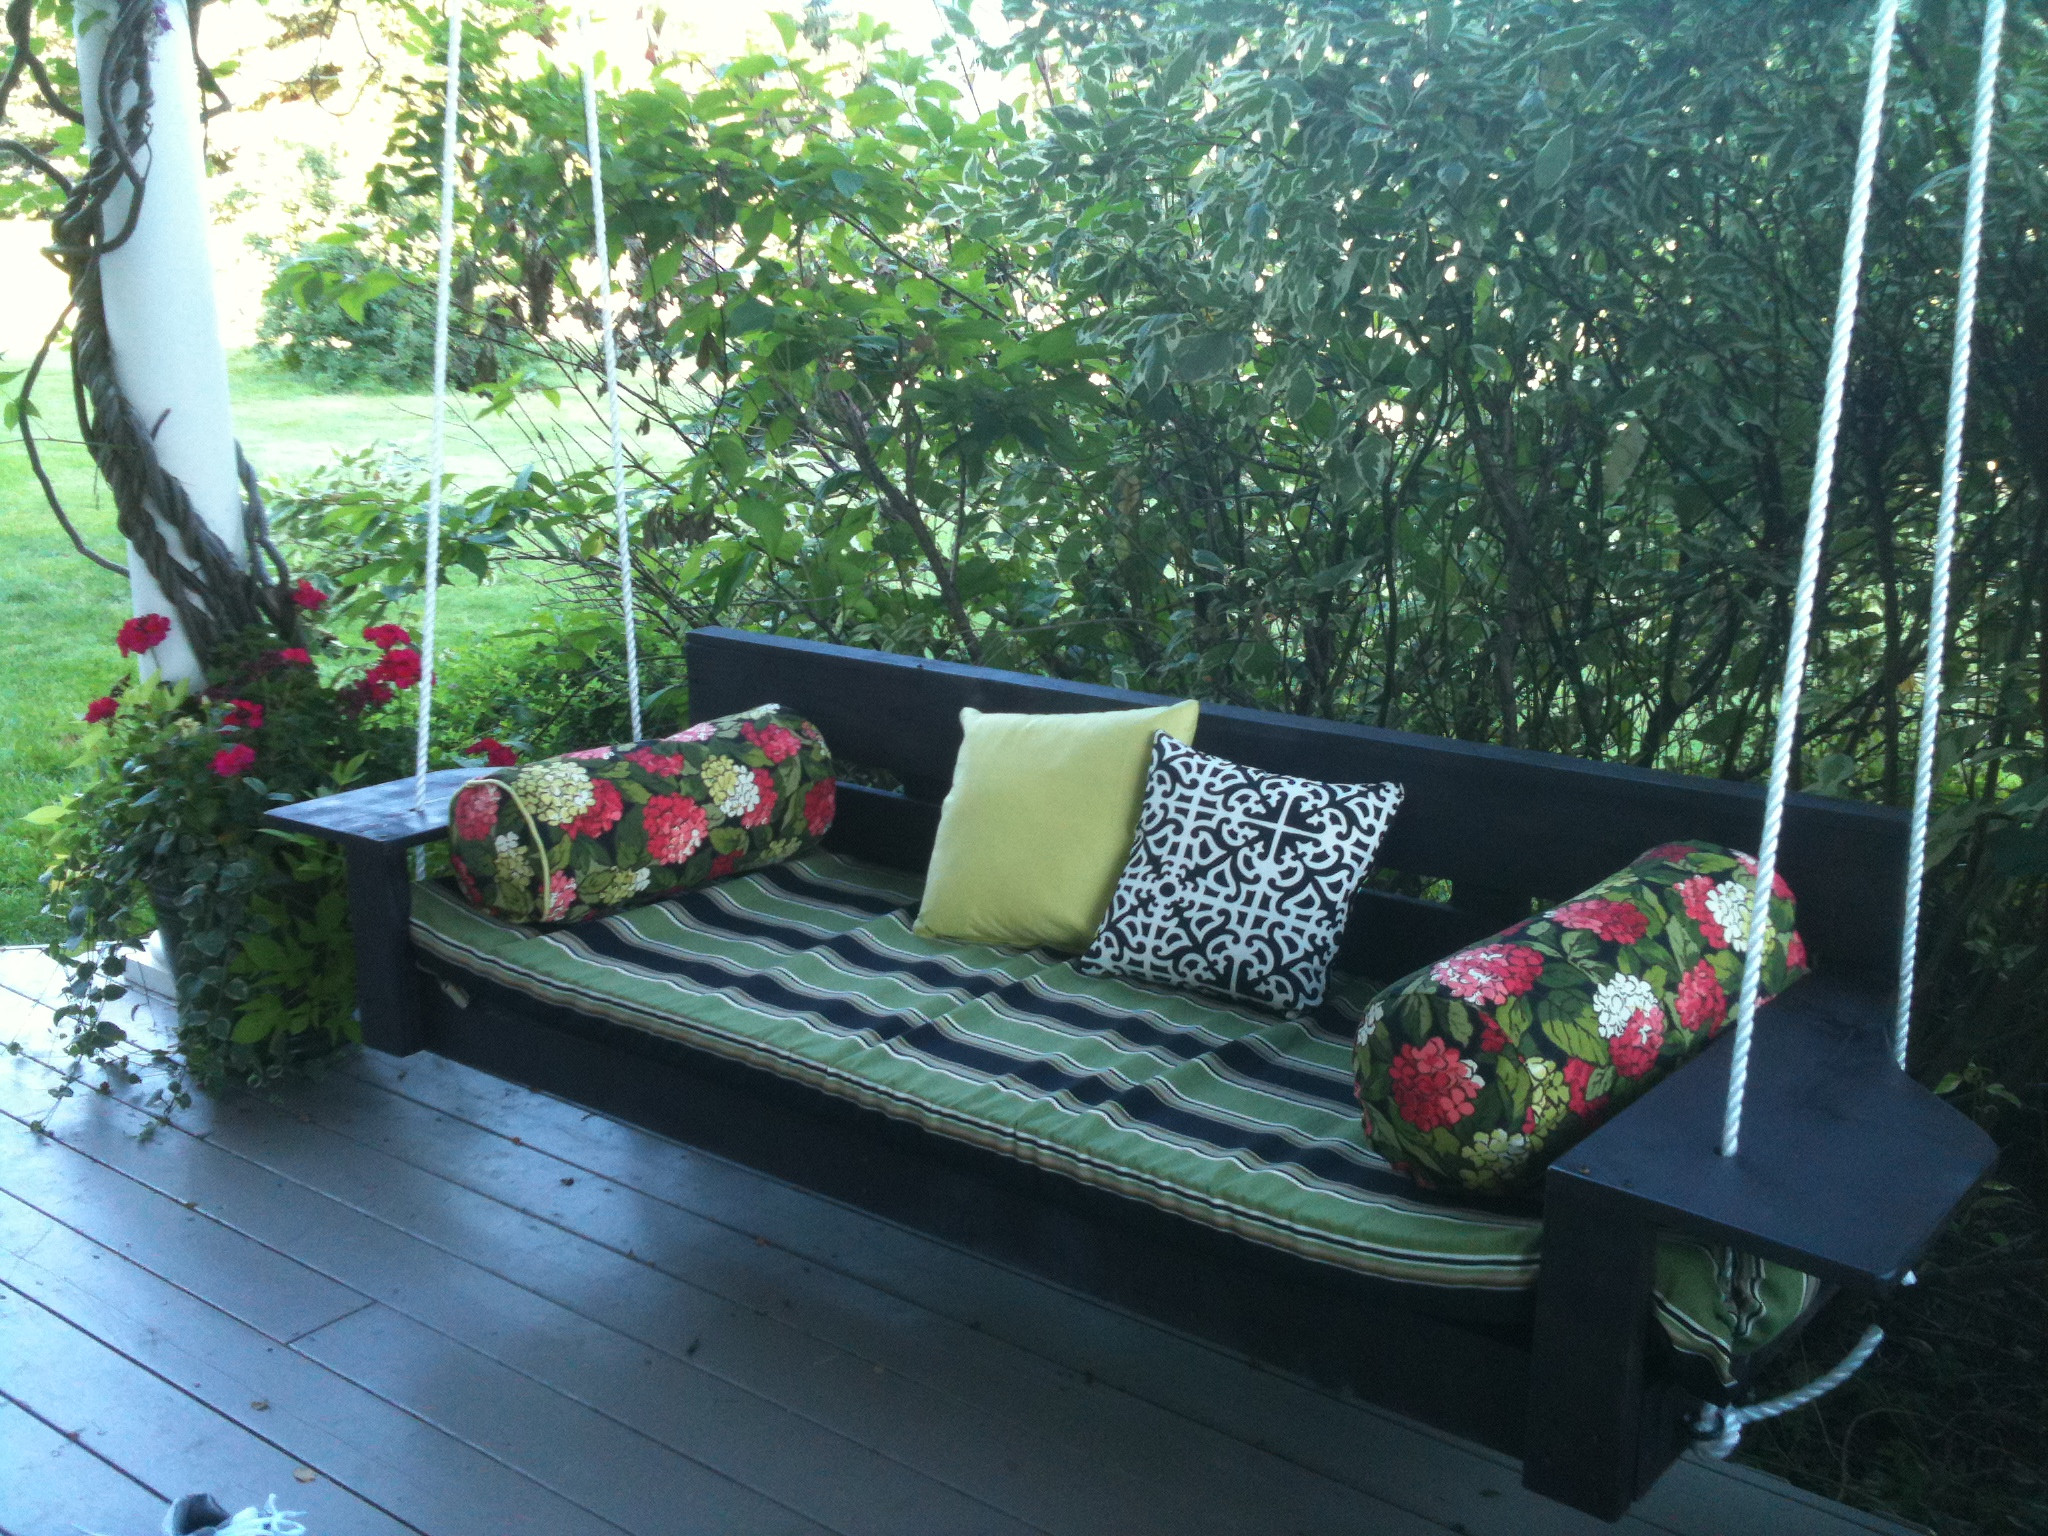 Best ideas about DIY Porch Swing . Save or Pin Ana White Now.